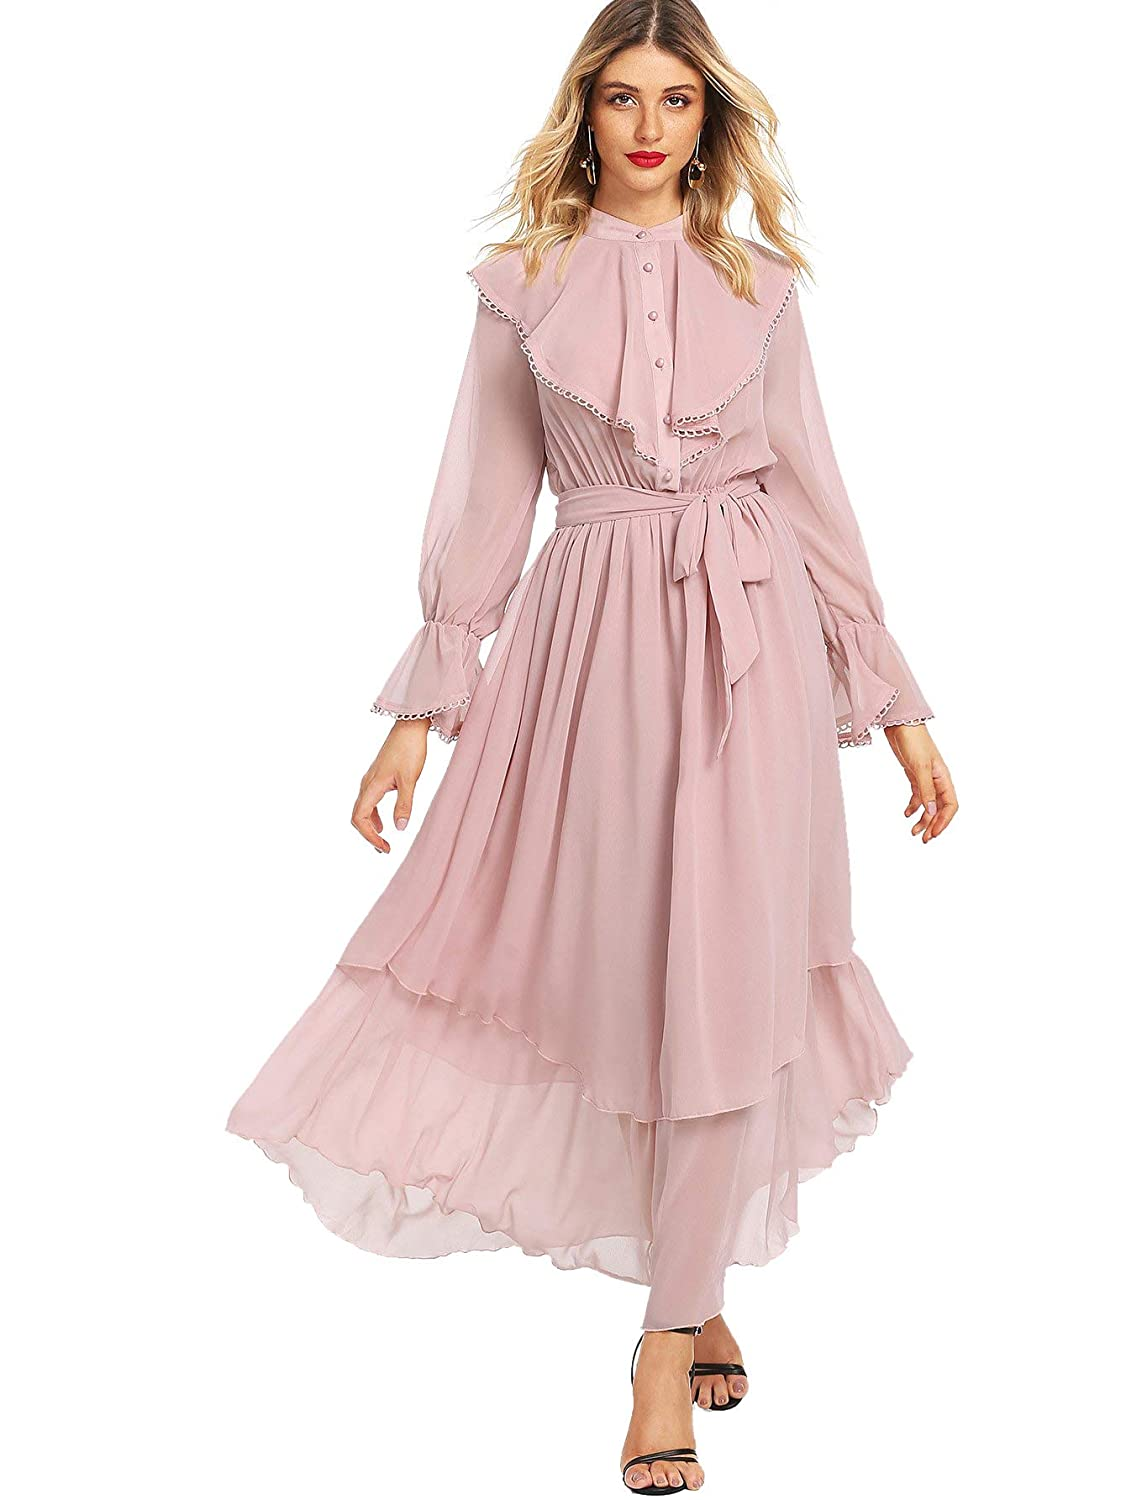 Victorian Plus Size Dresses | Edwardian Clothing, Costumes Milumia Womens Contrast Lace Ruffle Detail Crochet Trim Belted Tiered Layer Flowy Maxi Dress $26.99 AT vintagedancer.com